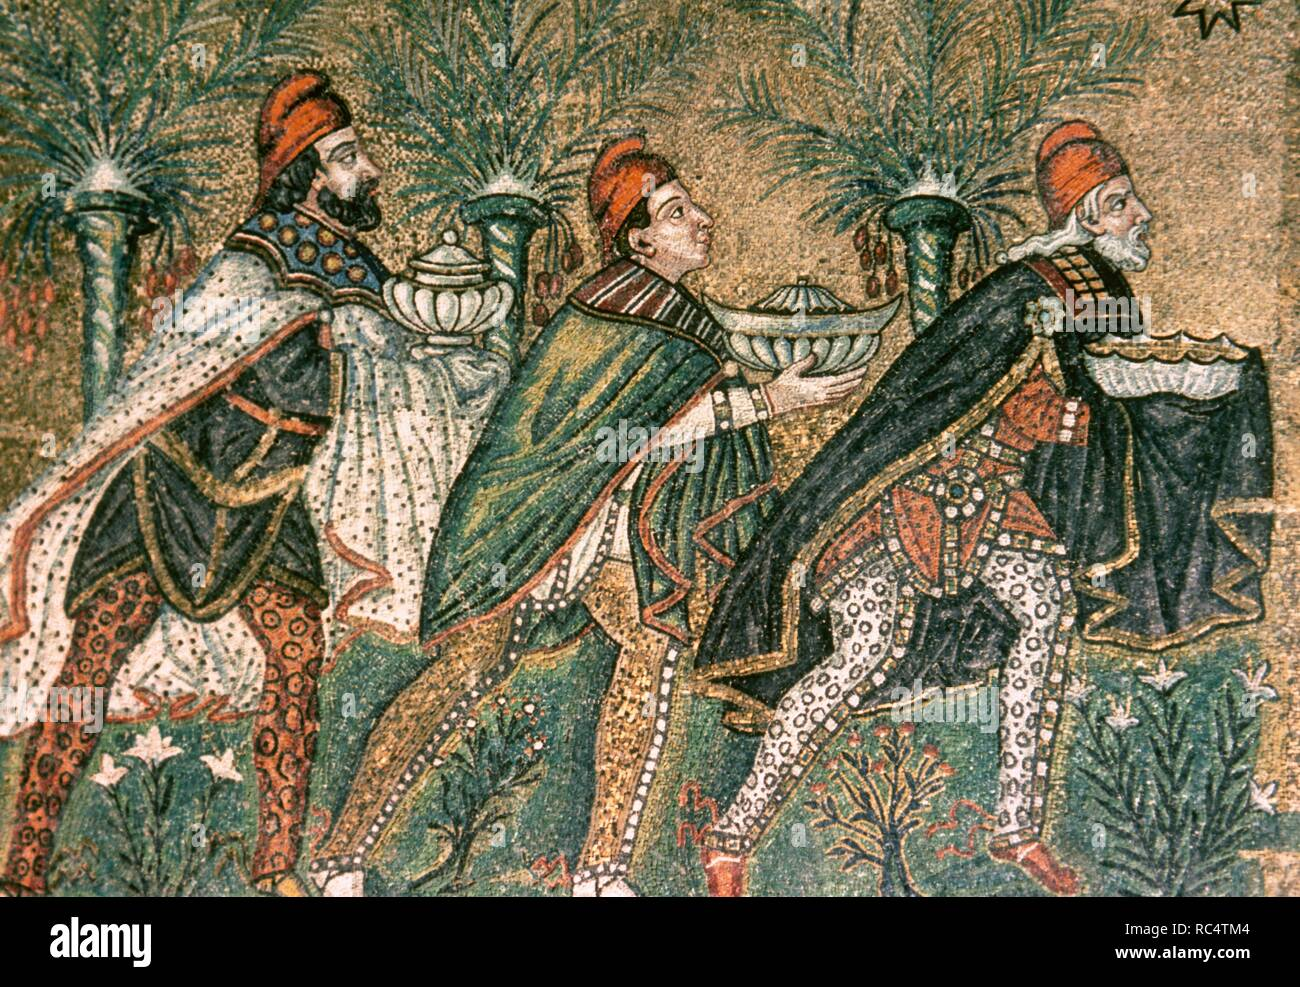 The Three Magi. Byzantine mosaic. Ca. 550. Detail. Restored in 18th century. Depicted in Persian clothing with breeches, capes, and Phrygian caps. Basilica of Sant' Apollinare Nuovo. Ravenna. Italy. Stock Photo